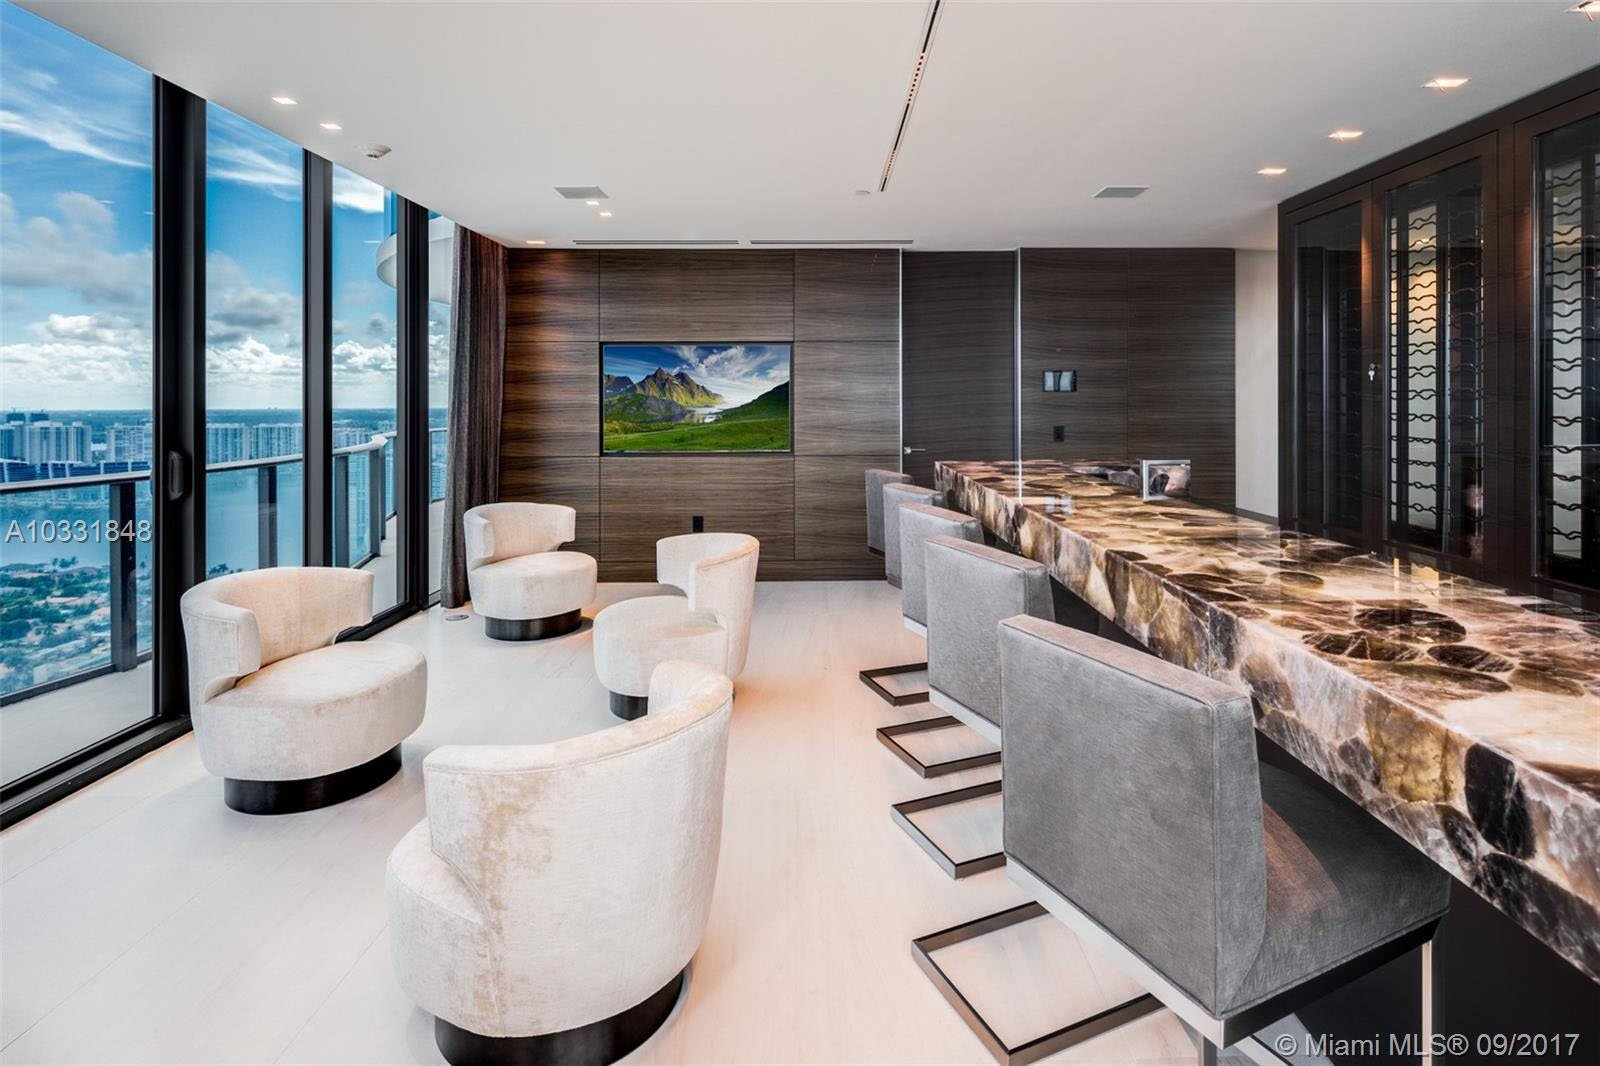 The buyer of a $36 million penthouse which has a $1 million-dollar bathroom will receive a $500,000 rare pink diamond as gift for purchasing it??? The triplex apartment is at the top of the 46-storey Regalia luxury tower in Sunny Isles Beach, Florida. The 10,755-square-foot property has six bedrooms, six full bathrooms and three partial bathrooms. There???s a huge living room featuring a cantilevered stone staircase and a dazzling chandelier with 225-plus floating glass pendants. The ???Entertainment Wing??? has an 1,100-square-foot game room and a movie theatre. The kitchen features cabinets custom designed and manufactured in Italy. On the second level, the master bedroom suite takes up the entire north eastern side of the building. Its $1 million dollar 1,500-square-foot bathroom features a large steam room and sauna, a hydrotherapy Jacuzzi tub and a towel-warming wall. A private glass elevator goes from floor to floor. On the rooftop, there???s a bar and cascading waterfall into a private pool. There is also a separate living and kitchen area designated for guests and staff quarters. Outside, there???s a 360-degree terrace on the first floor, a 270-degree terrace on the second level and a private pool, summer barbecue and 360-degree wrap-around terraces on the top floor. ***** TNI Press Ltd does not hold or assert any Copyright or License in the attached image. Any fees paid to TNI are for TNI???s services only. Such fee does not, nor is it intended to, convey to the user any Copyright or License in the image. By publishing this image, the user expressly agrees to indemnify TNI against any claims, demands, or causes of action arising from, or connected in any way, with the user's publication of the image.